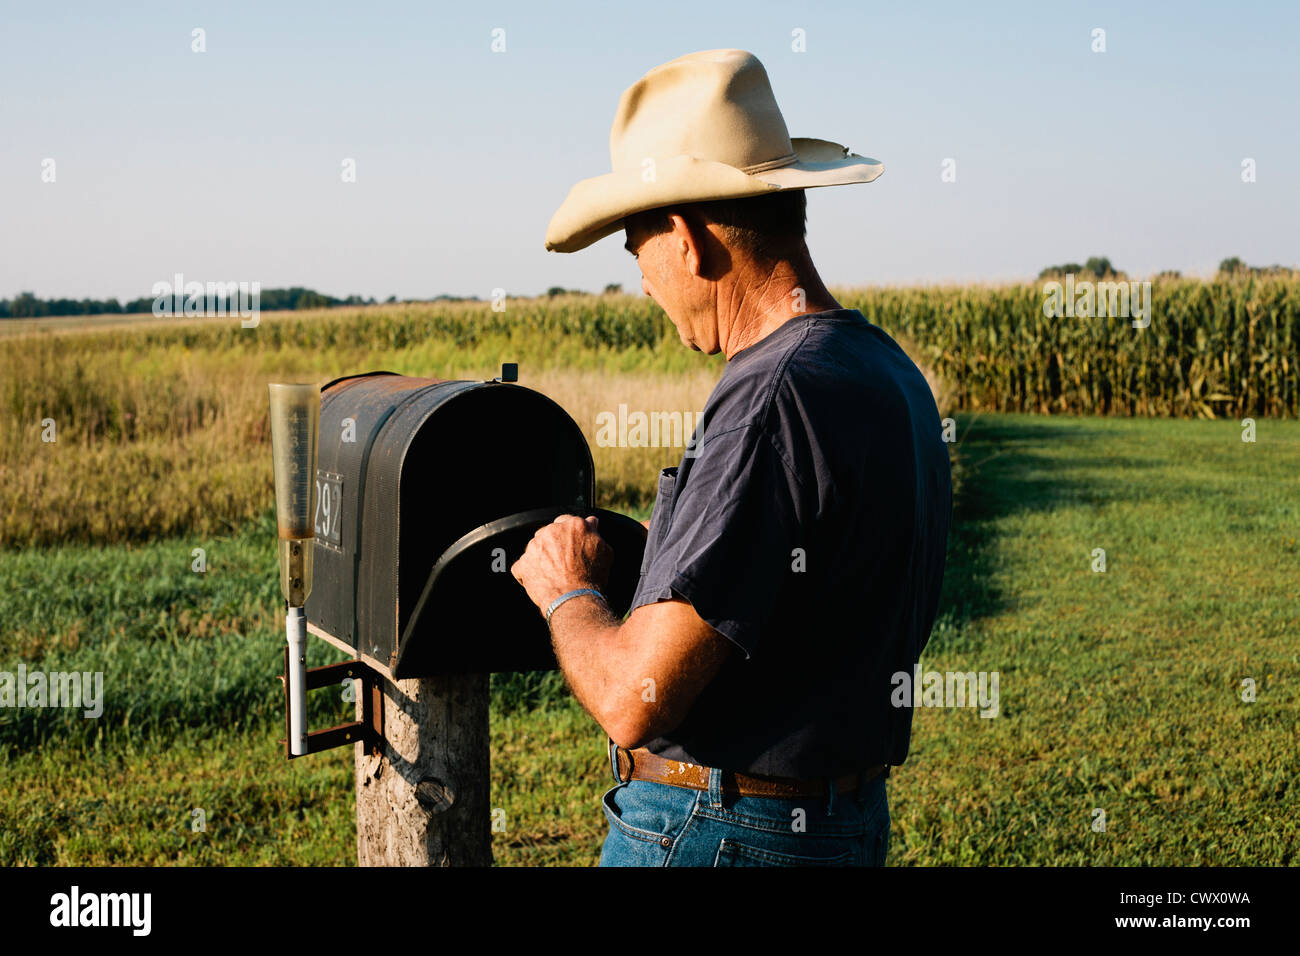 Farmer checking mail box in rural field - Stock Image